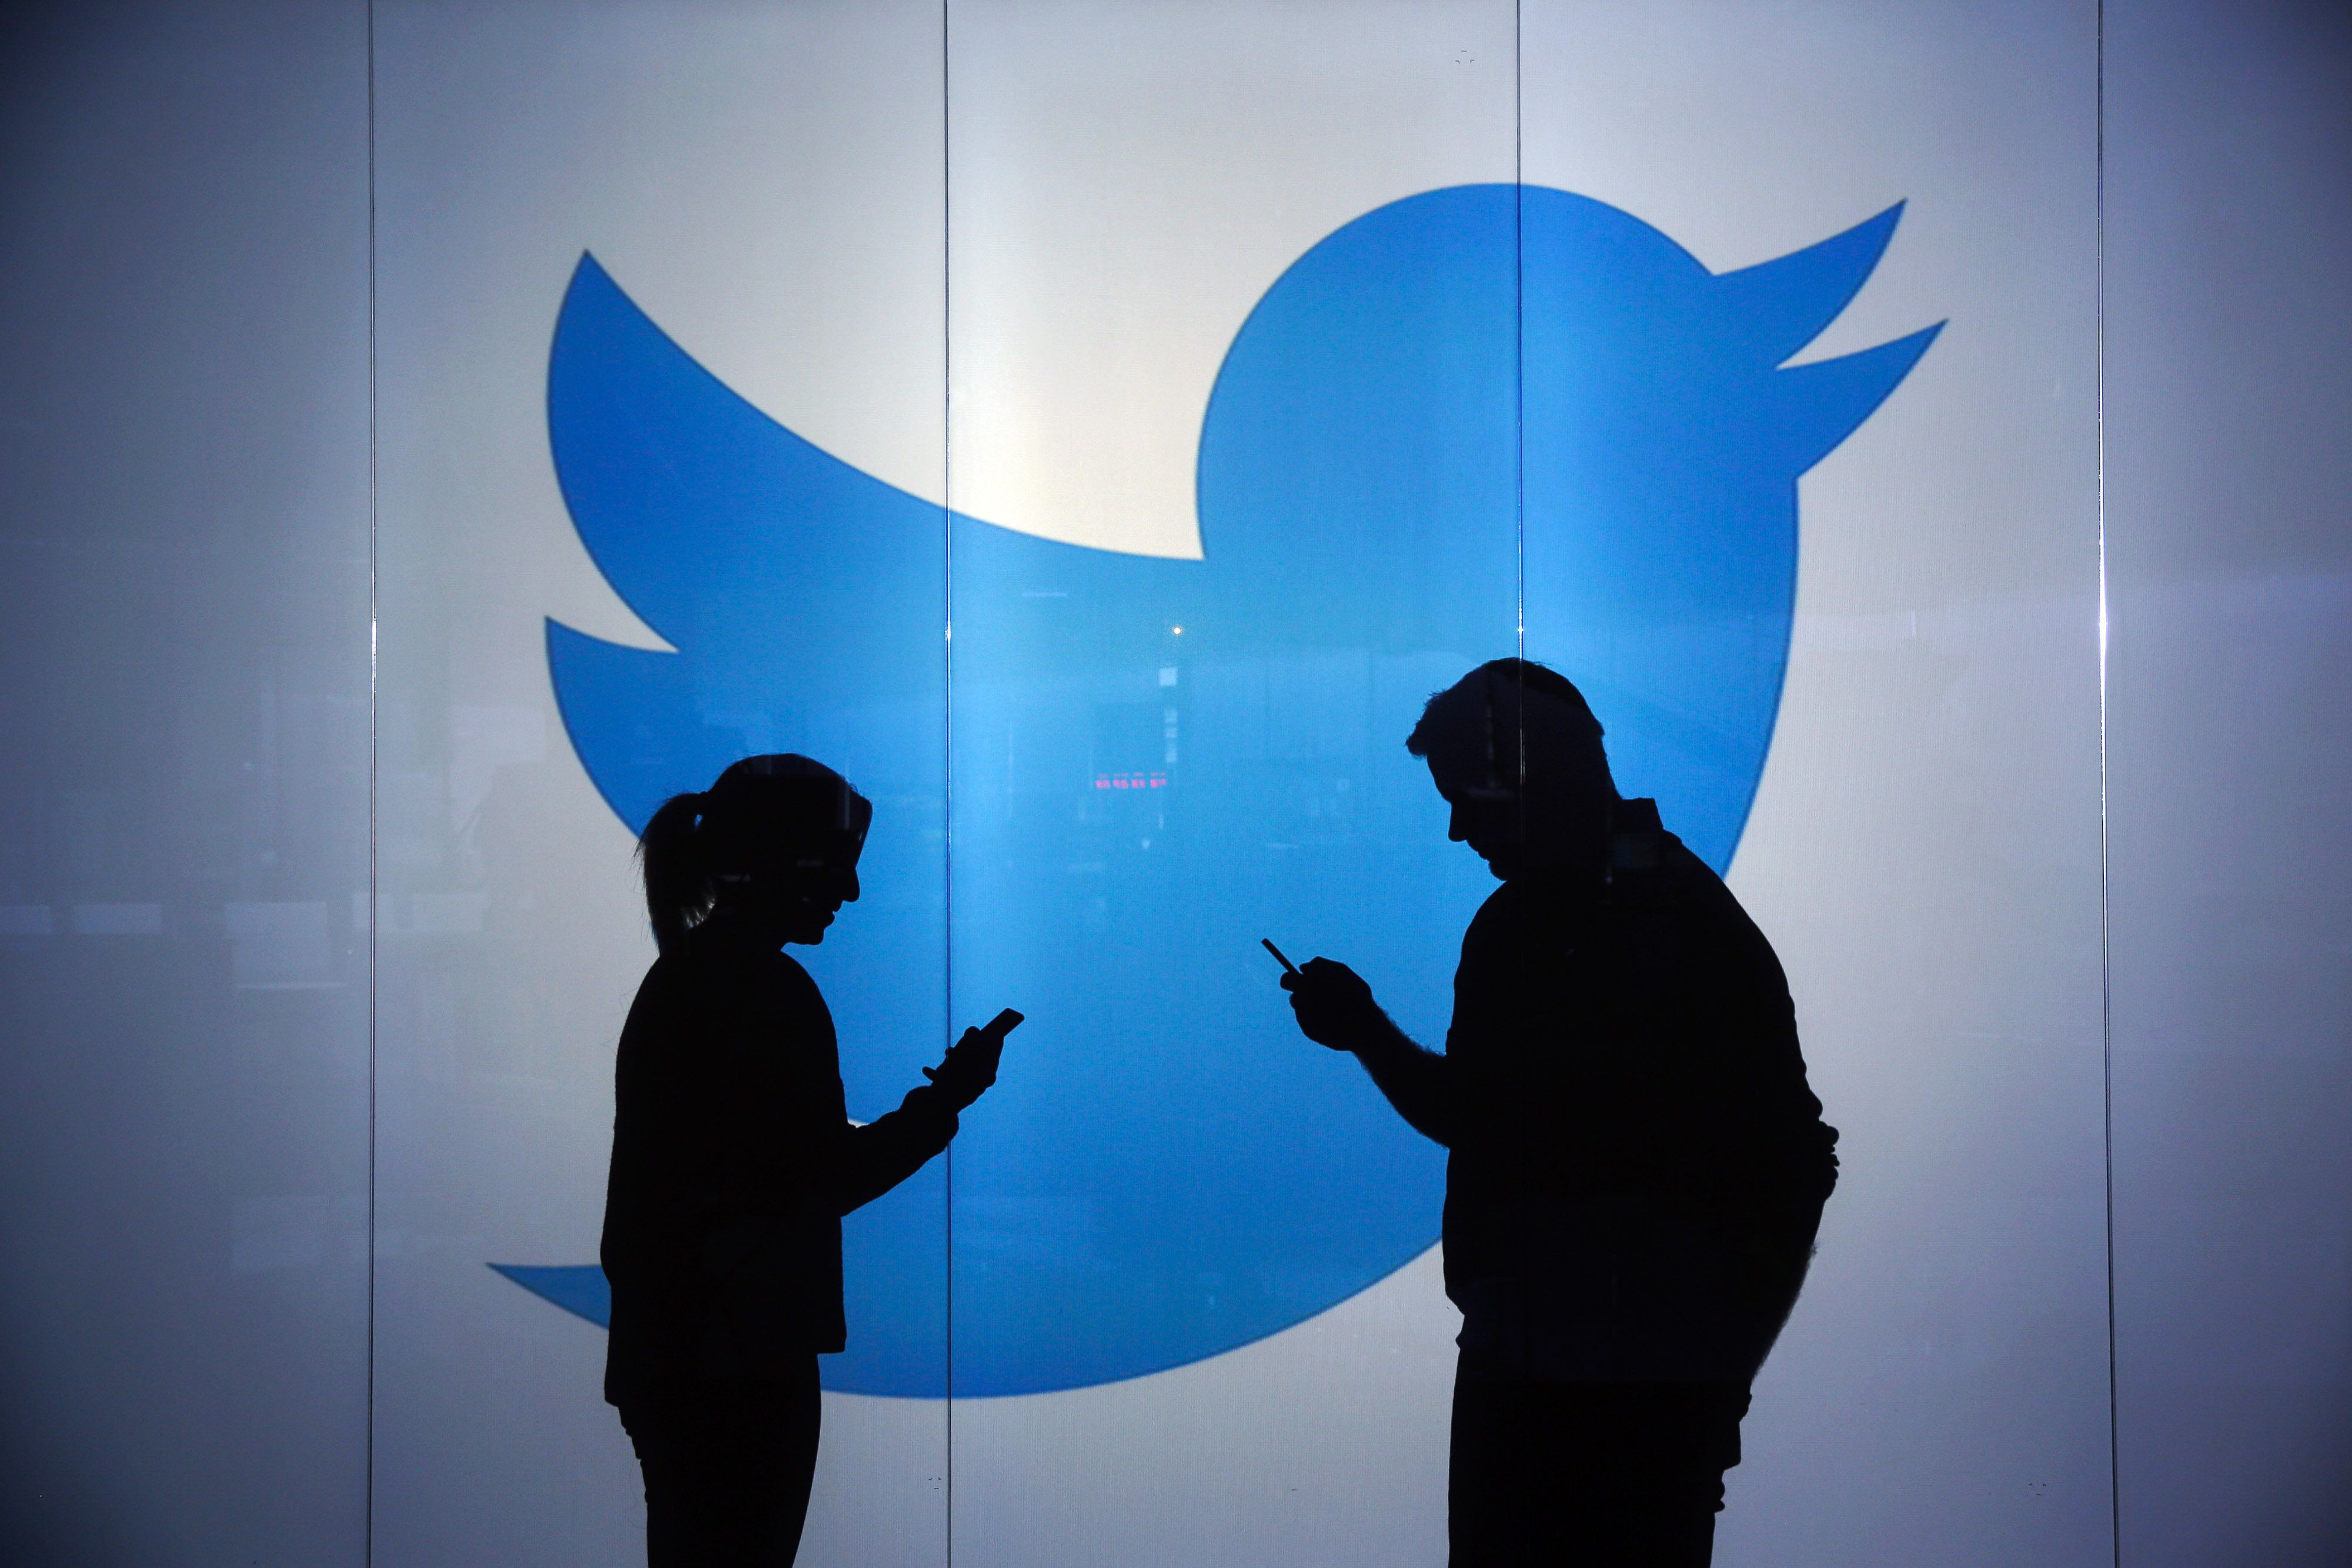 Twitter users received an alert from the company on May 3 directing them to change their passwords.